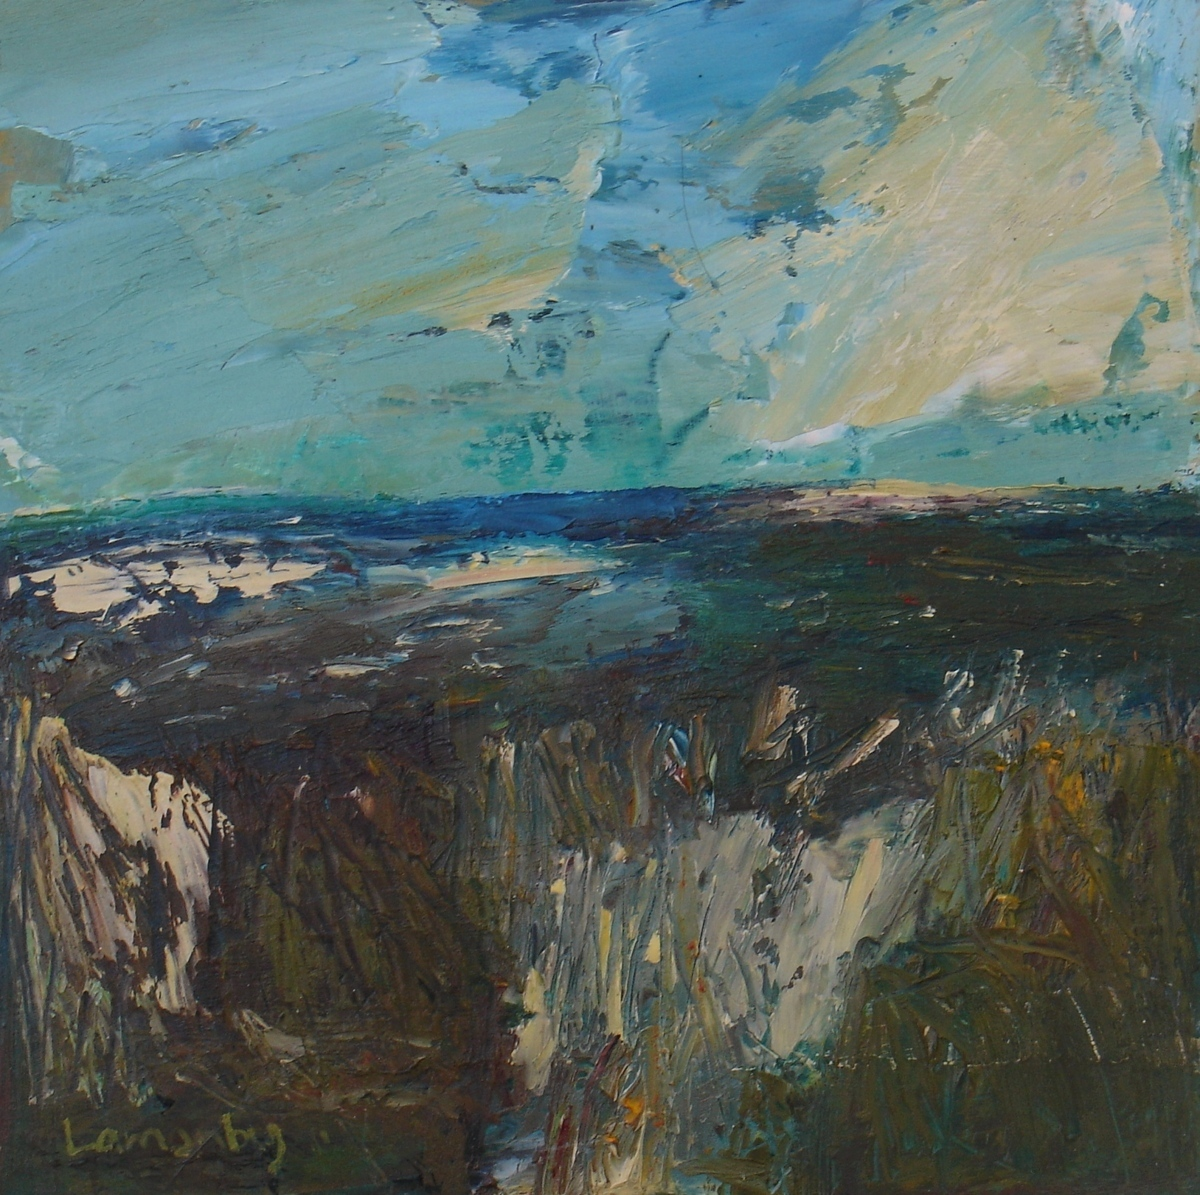 Penwith Landscape (large view)